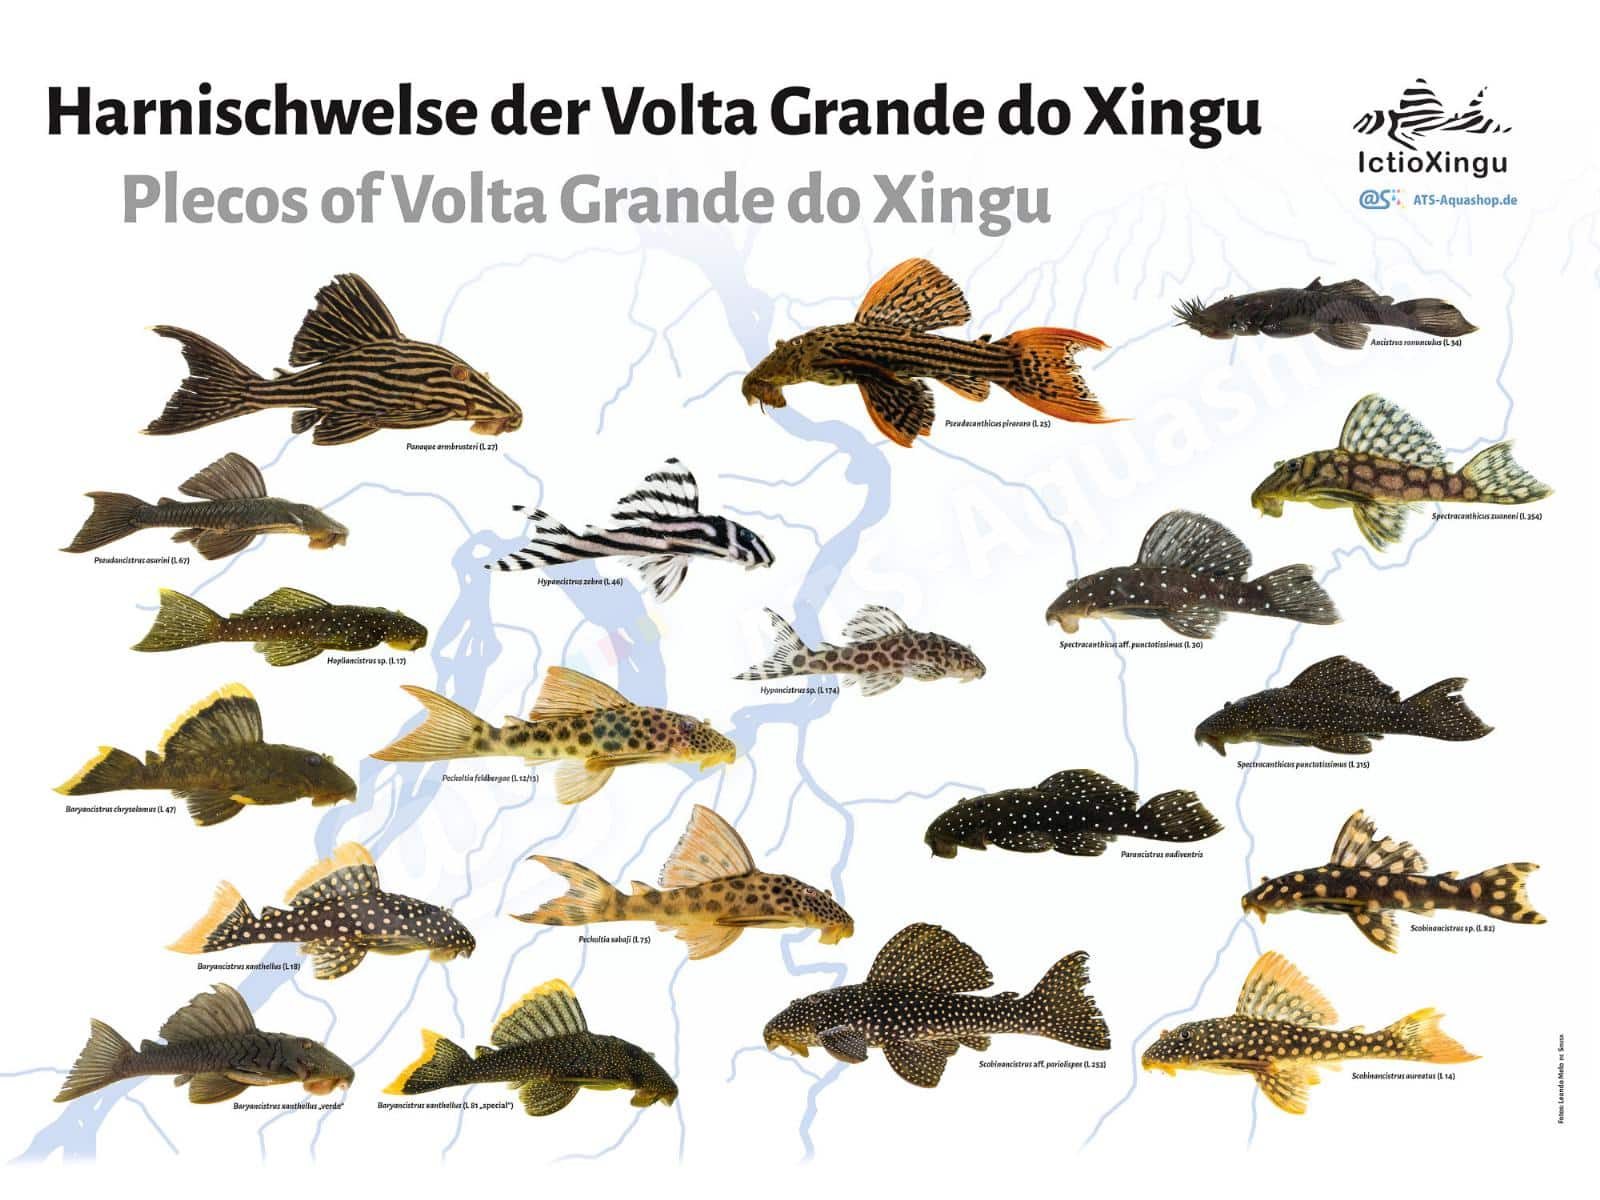 Posters: Plecos of Volta Grande do Xingu